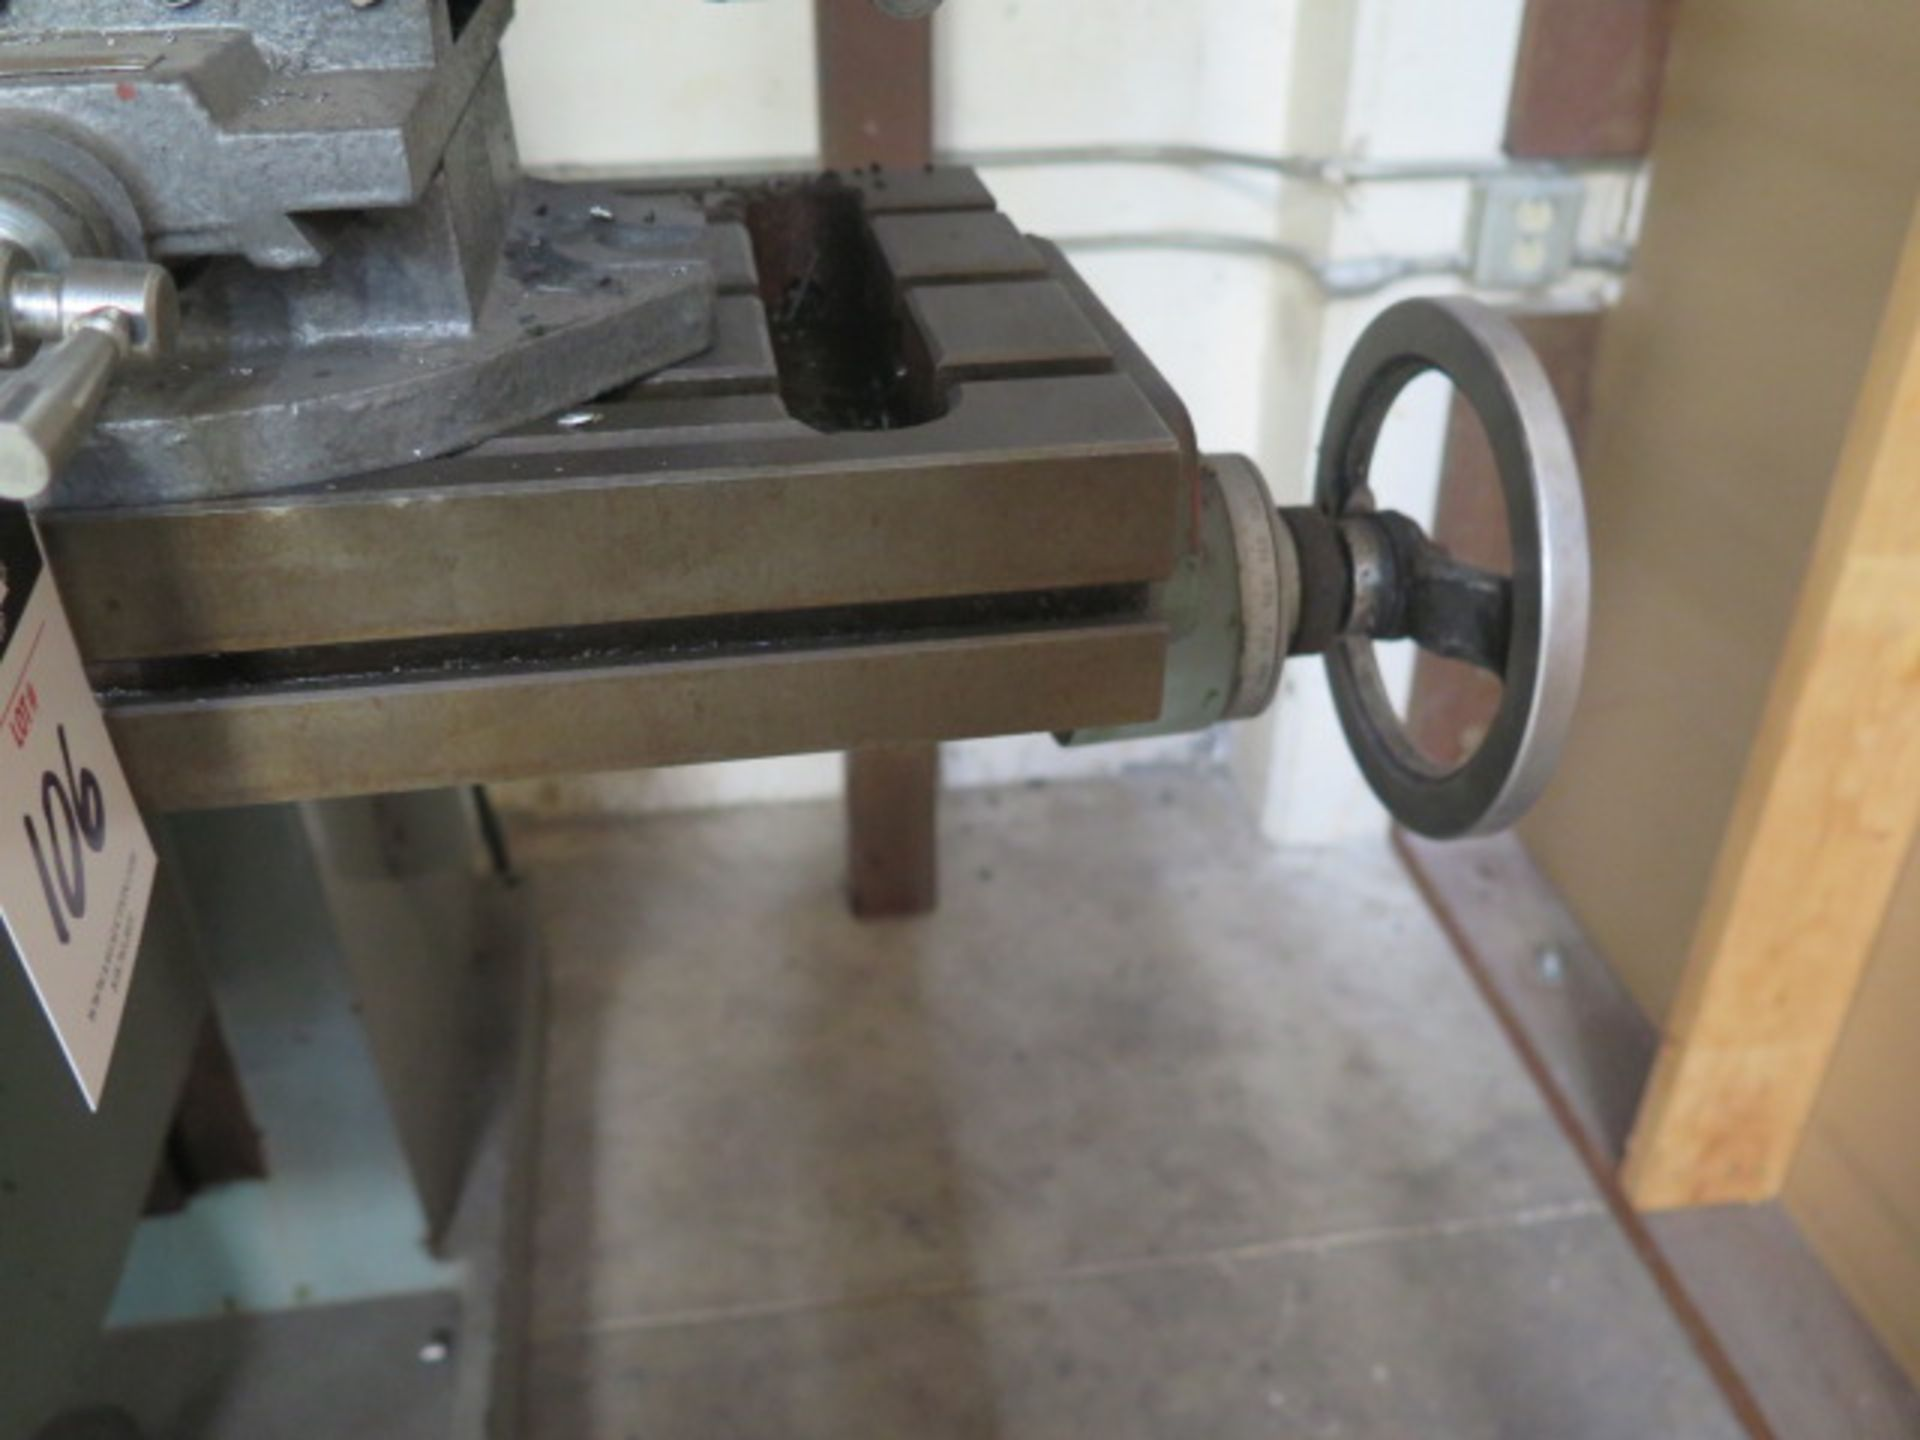 """Import Vertical Mill w/ 3Hp Motor, 80-2720 RPM, 8-Speeds, R8 Spindle, 10"""" x 48"""" Table (SOLD AS- - Image 8 of 9"""